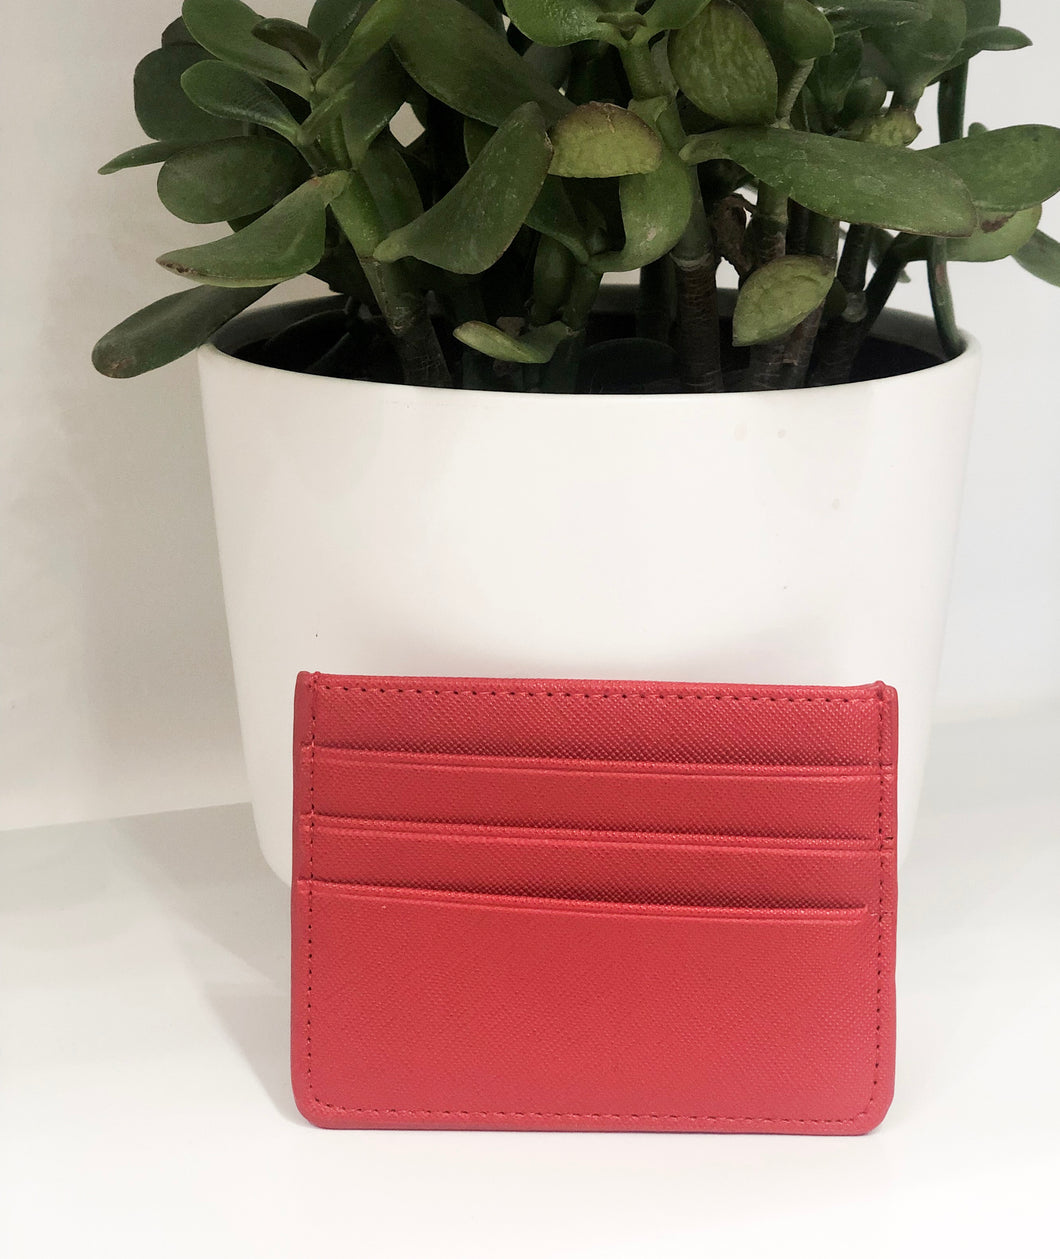 Skinny Card Case in Red